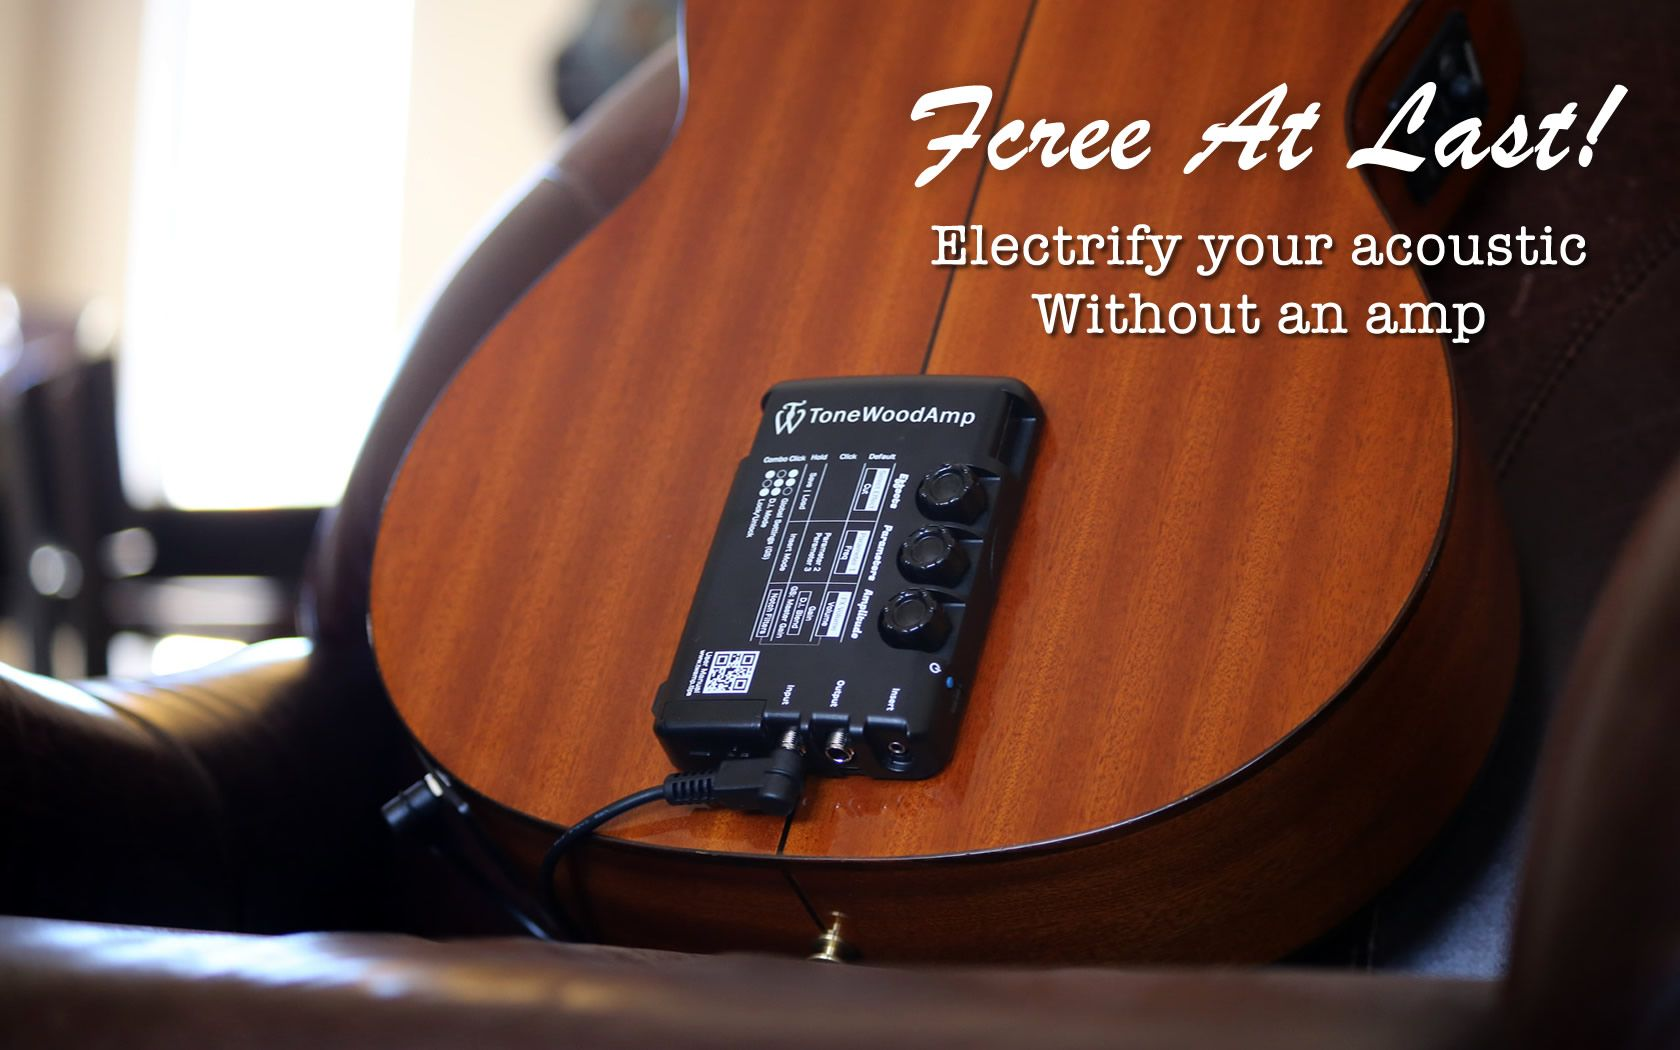 Tonewood Amp Electrify Your Acoustic With Electric Effects Generated From Your Acoustic Guitar Acoustic Guitar Acoustic Guitar